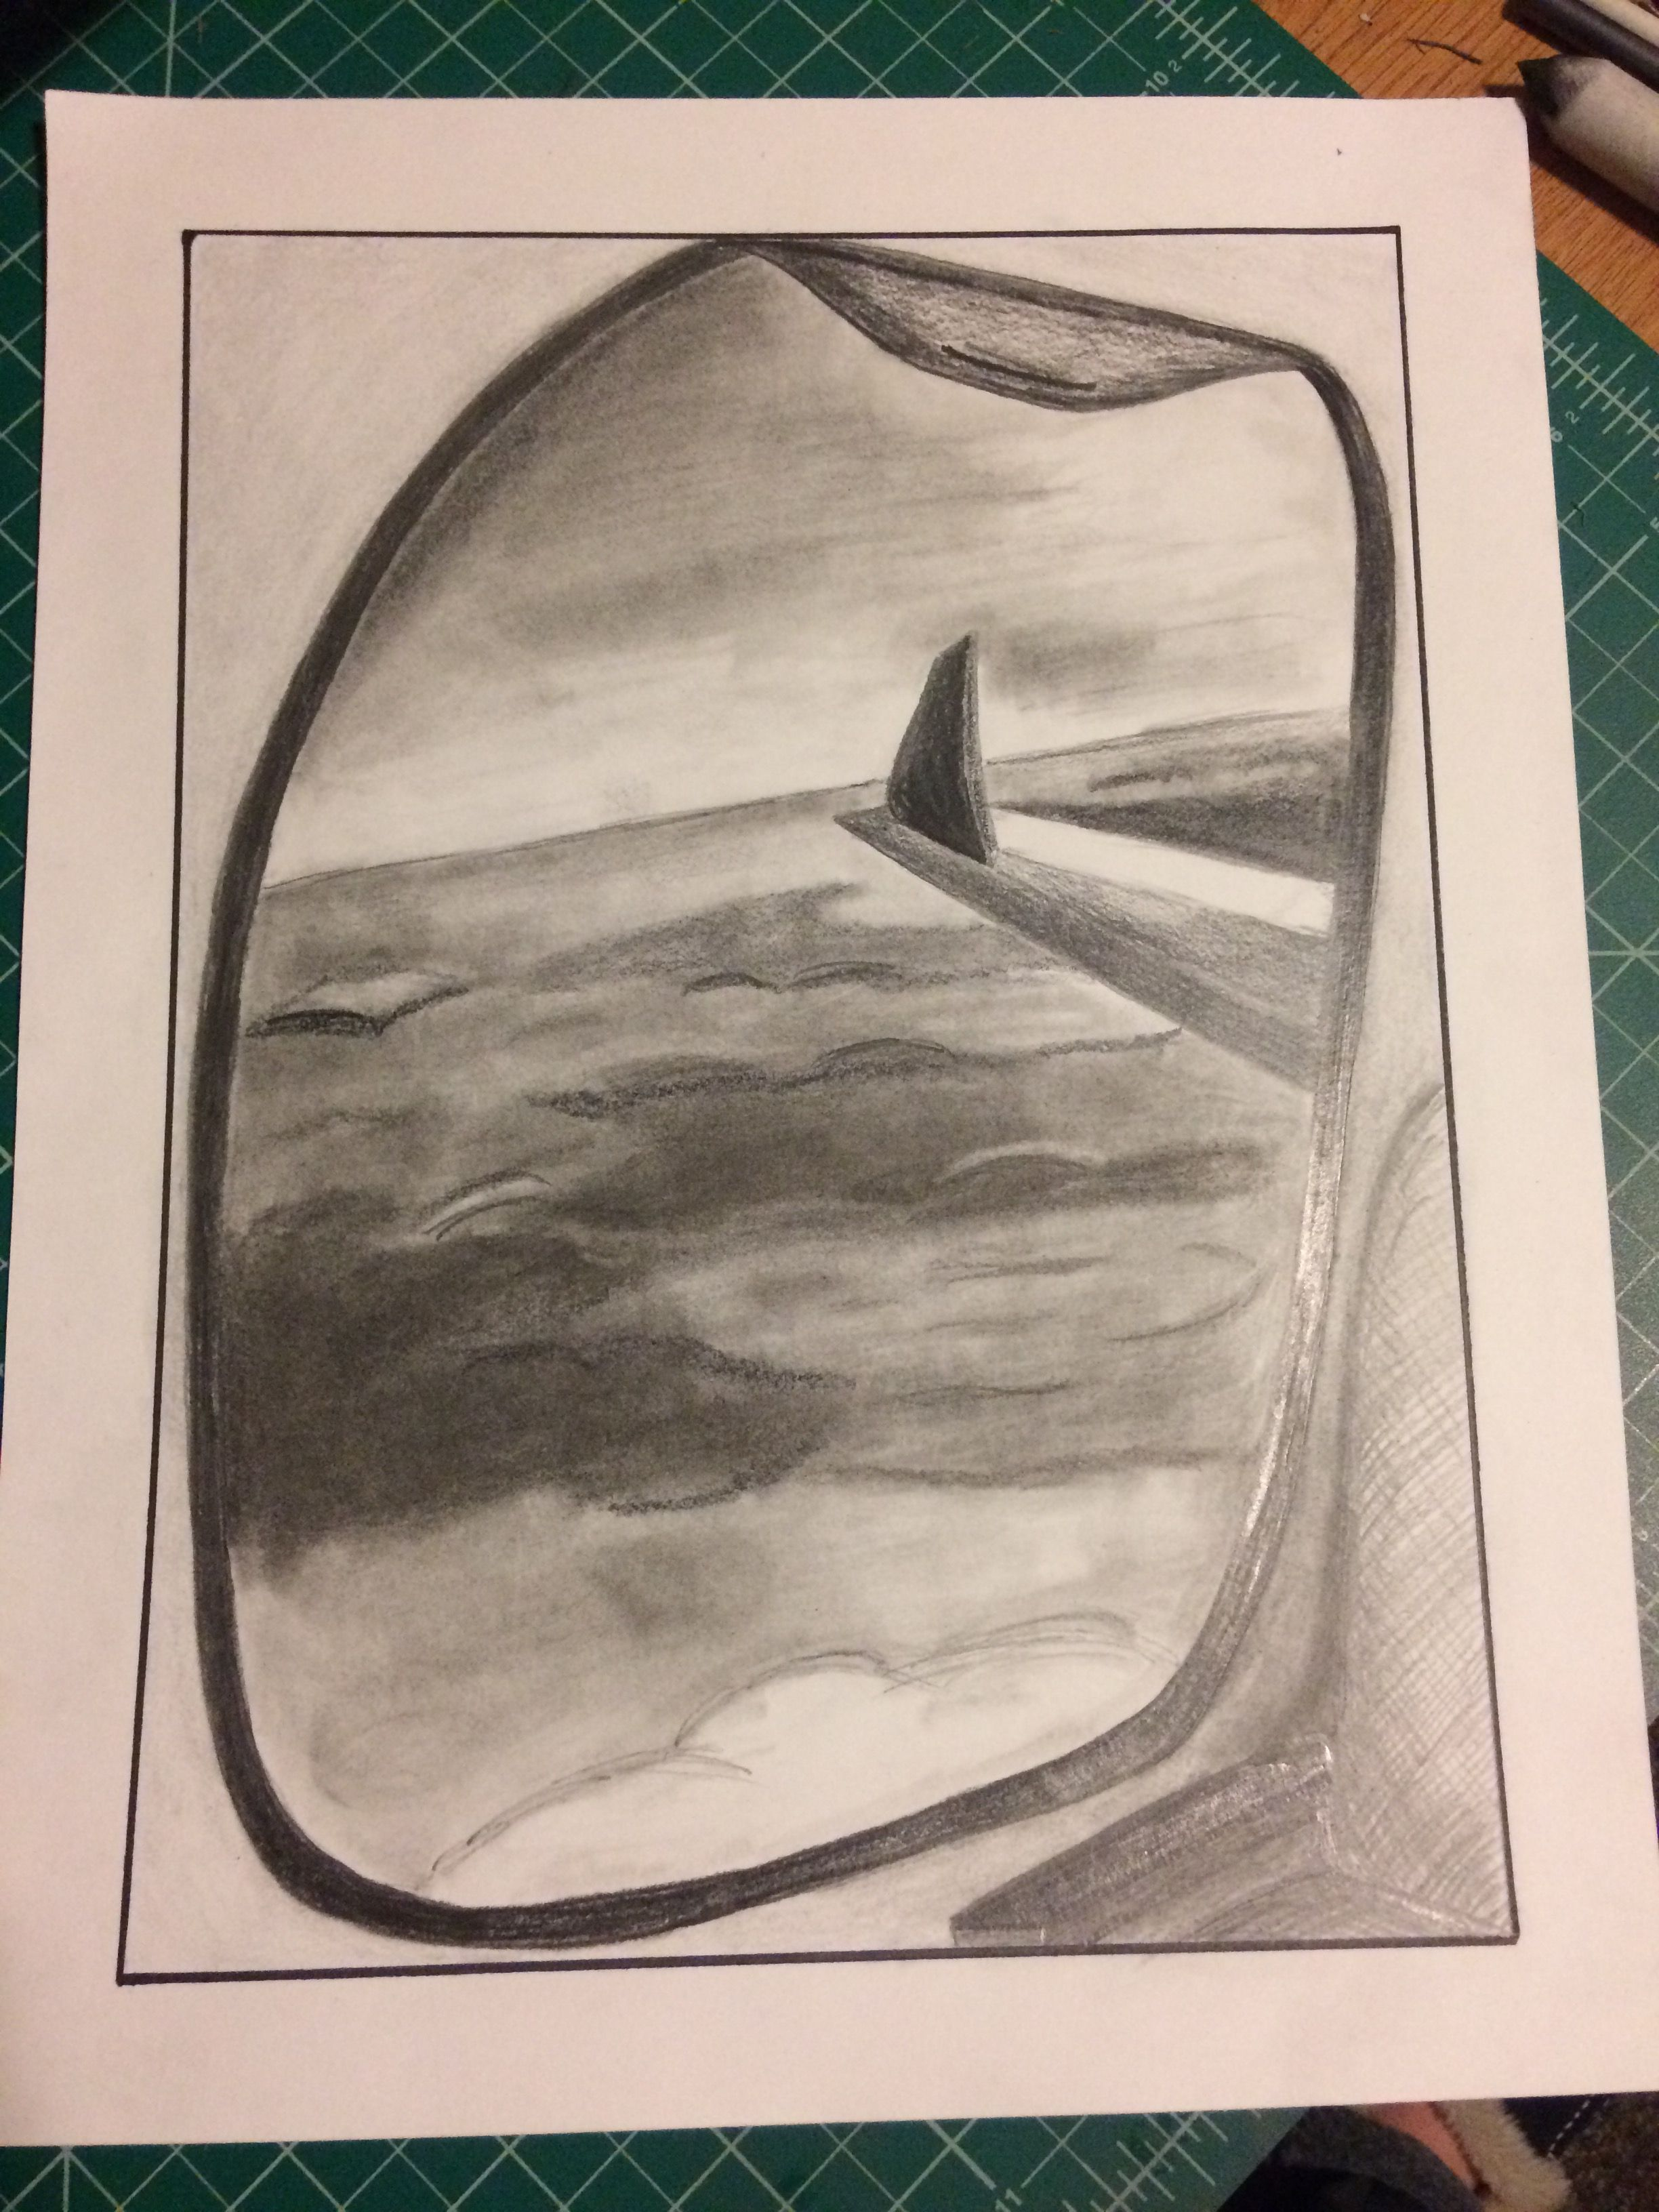 11 14 2017 Altitude Illustration This Is Graphite Drawing Of The